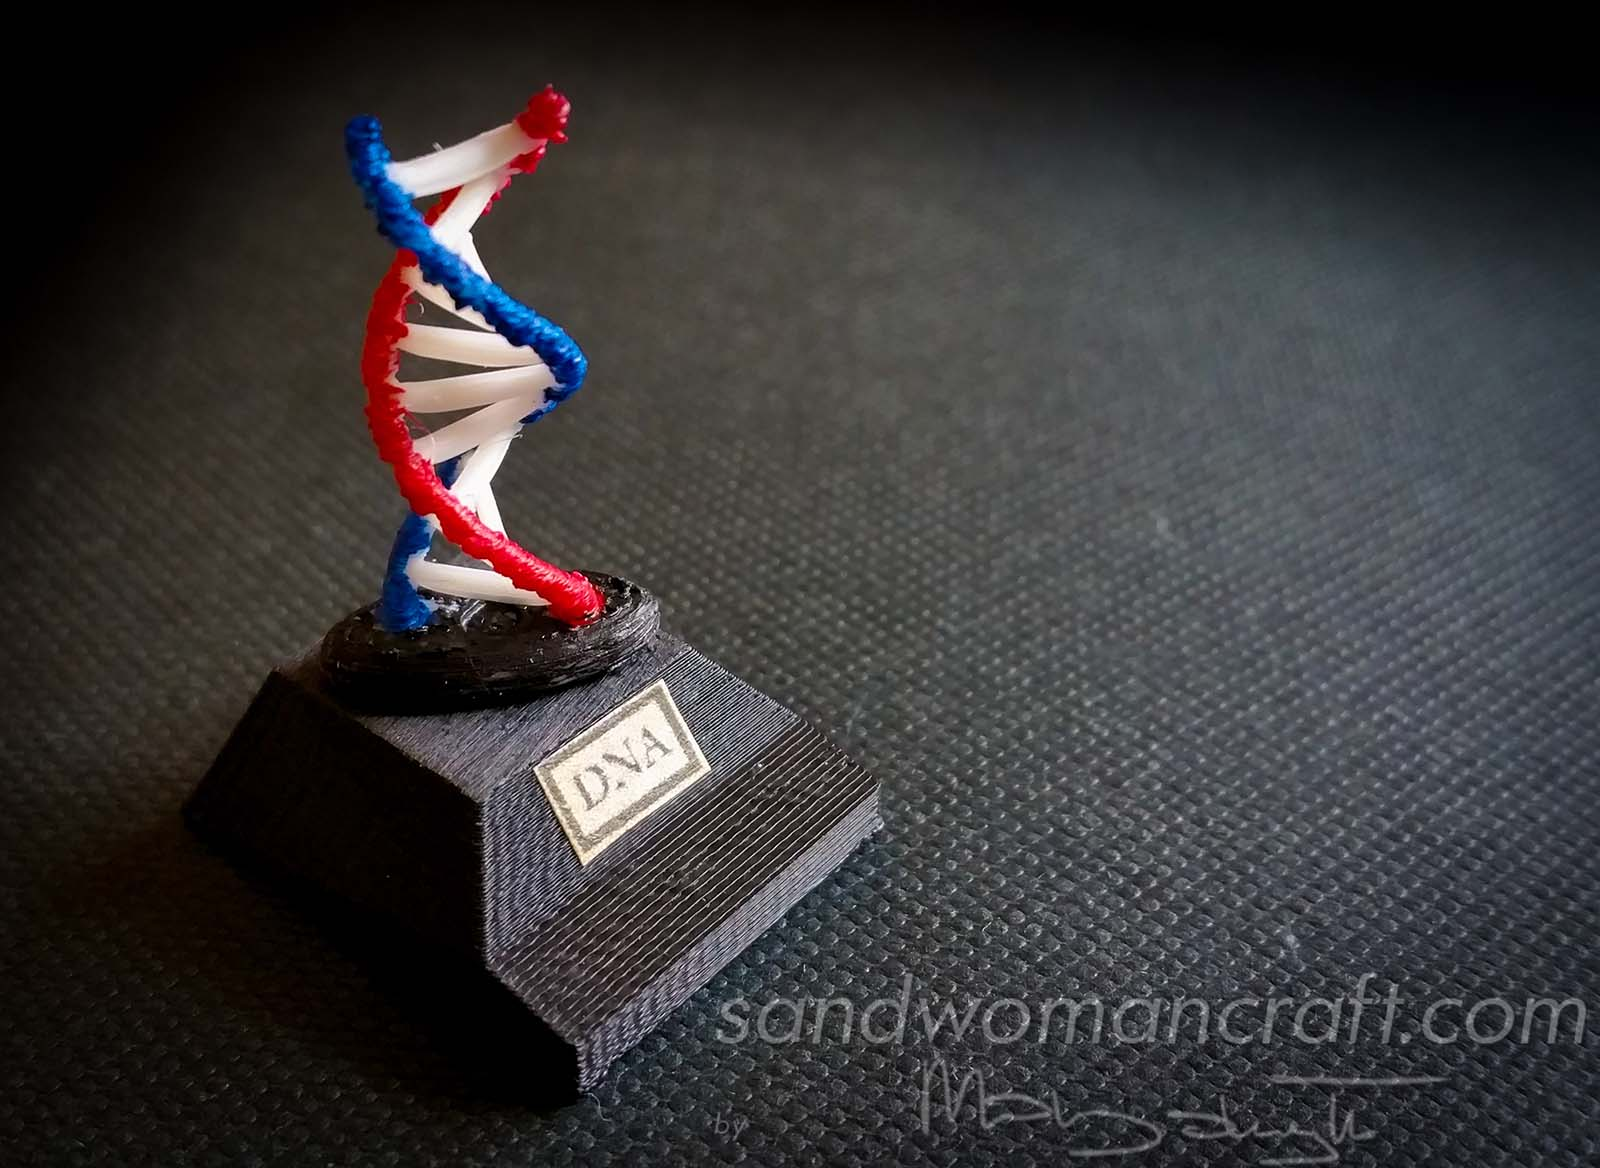 Miniature DNA model and sheets of paper on that subject